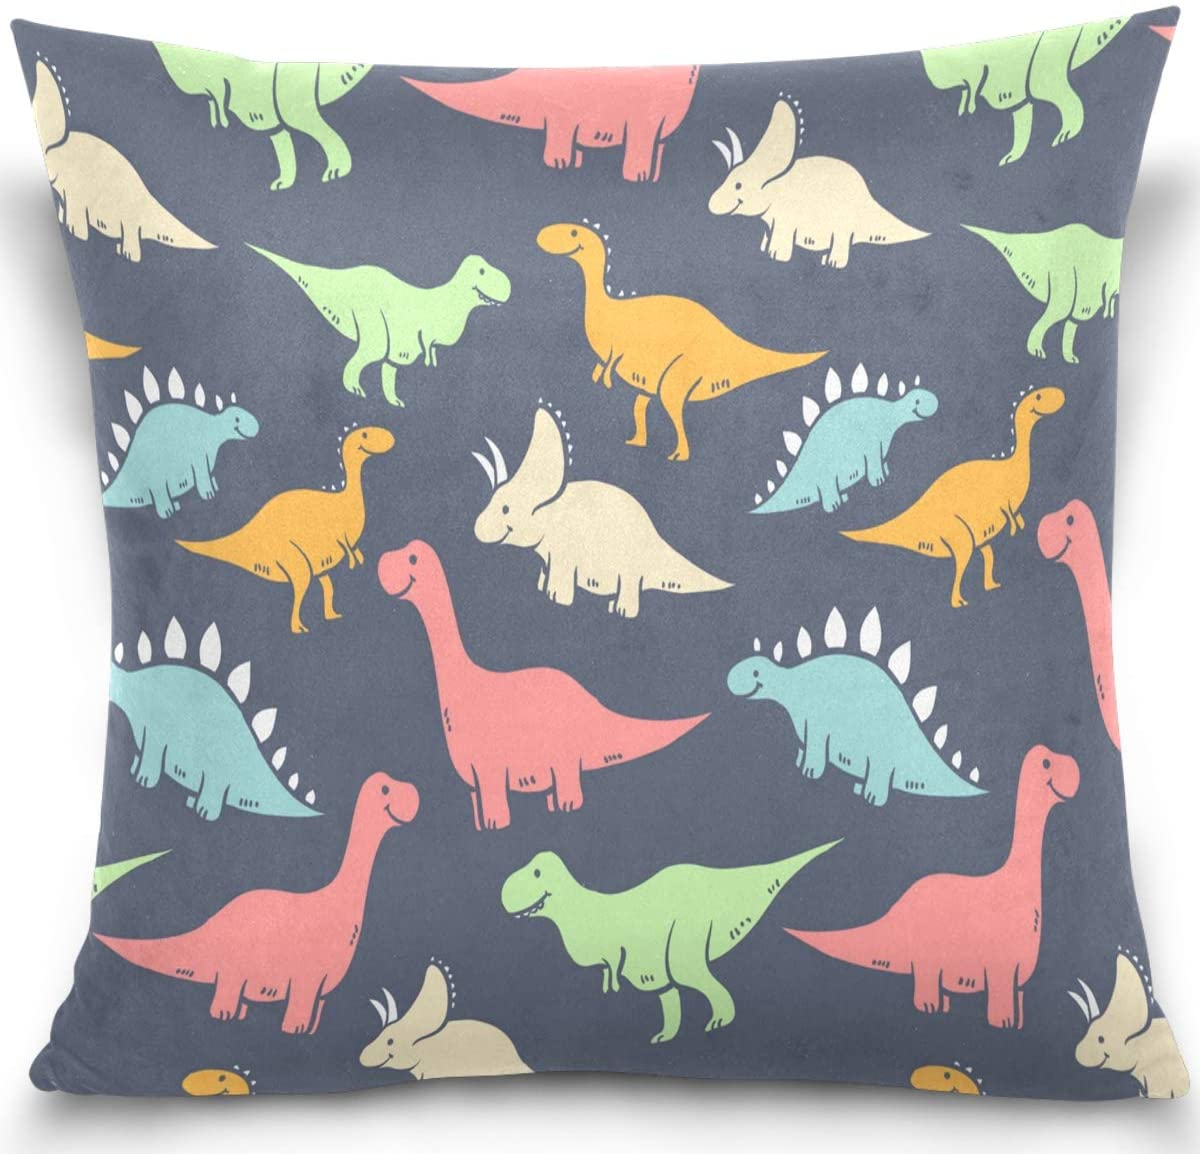 Olinyou Kawaii Dinosaur Colorful Printing Throw Pillow Cases Decorative Square Pillowcase Cushion Cover 16 x 16 Inch